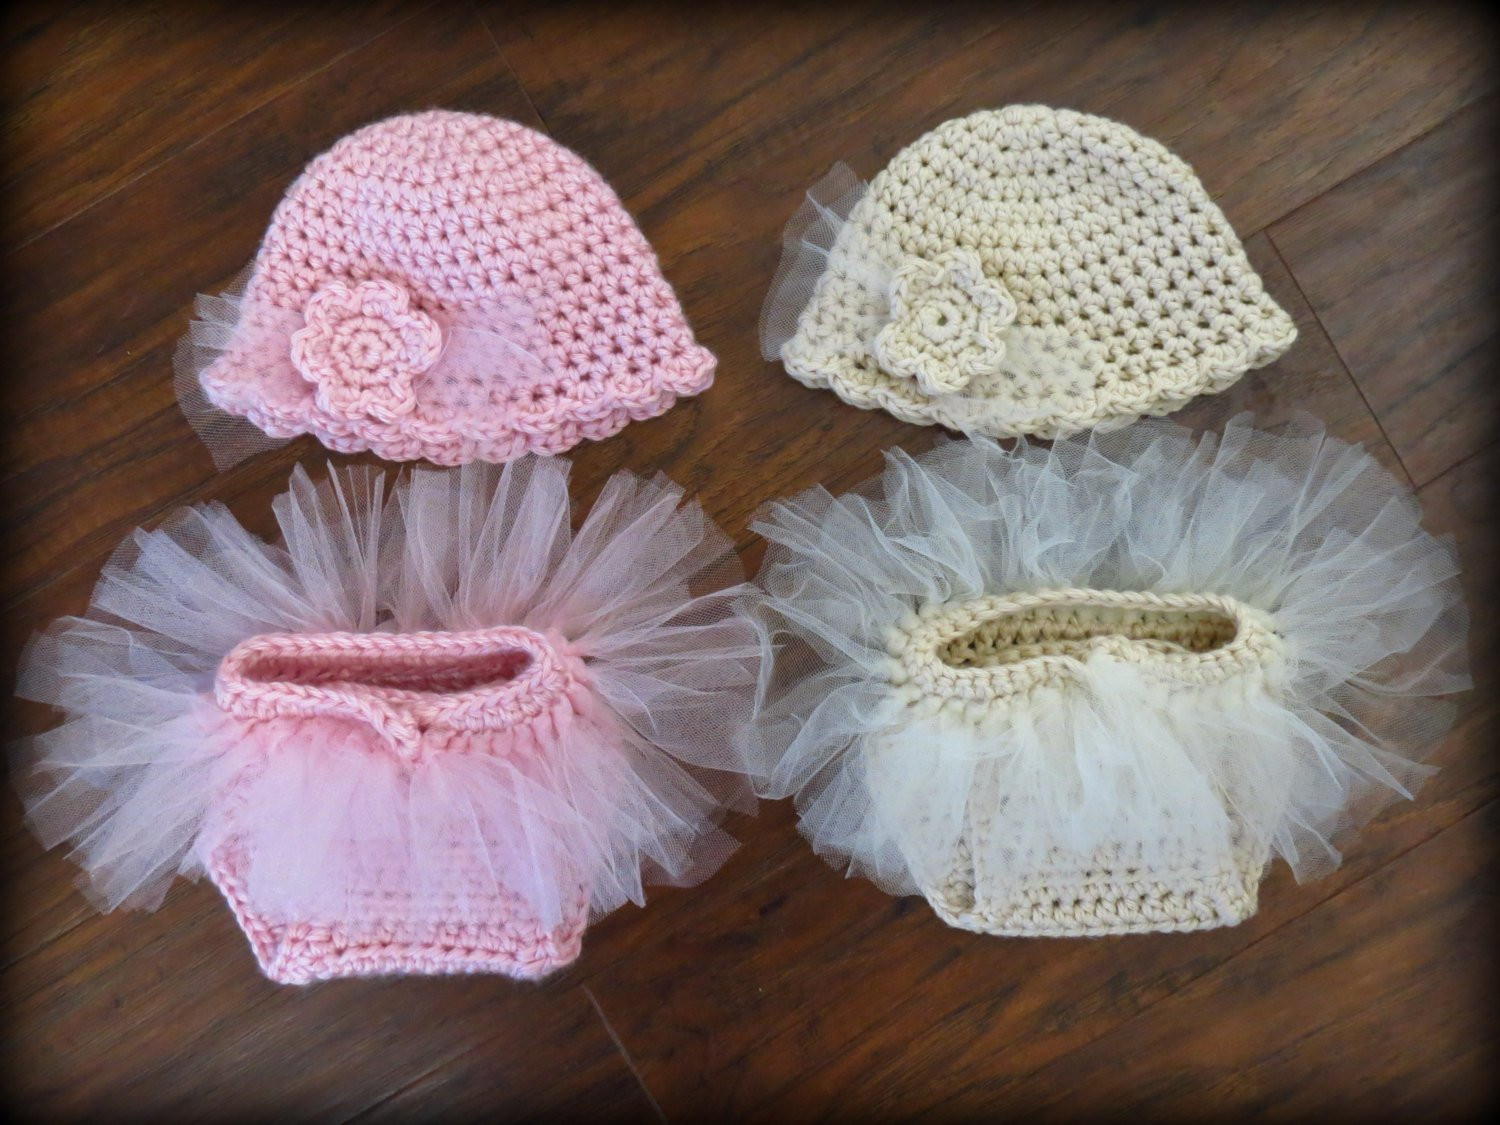 Inspirational Crochet Diaper Cover Pattern Crochet Hat Pattern soaker Crochet Baby Diaper Cover Of Wonderful 48 Photos Crochet Baby Diaper Cover